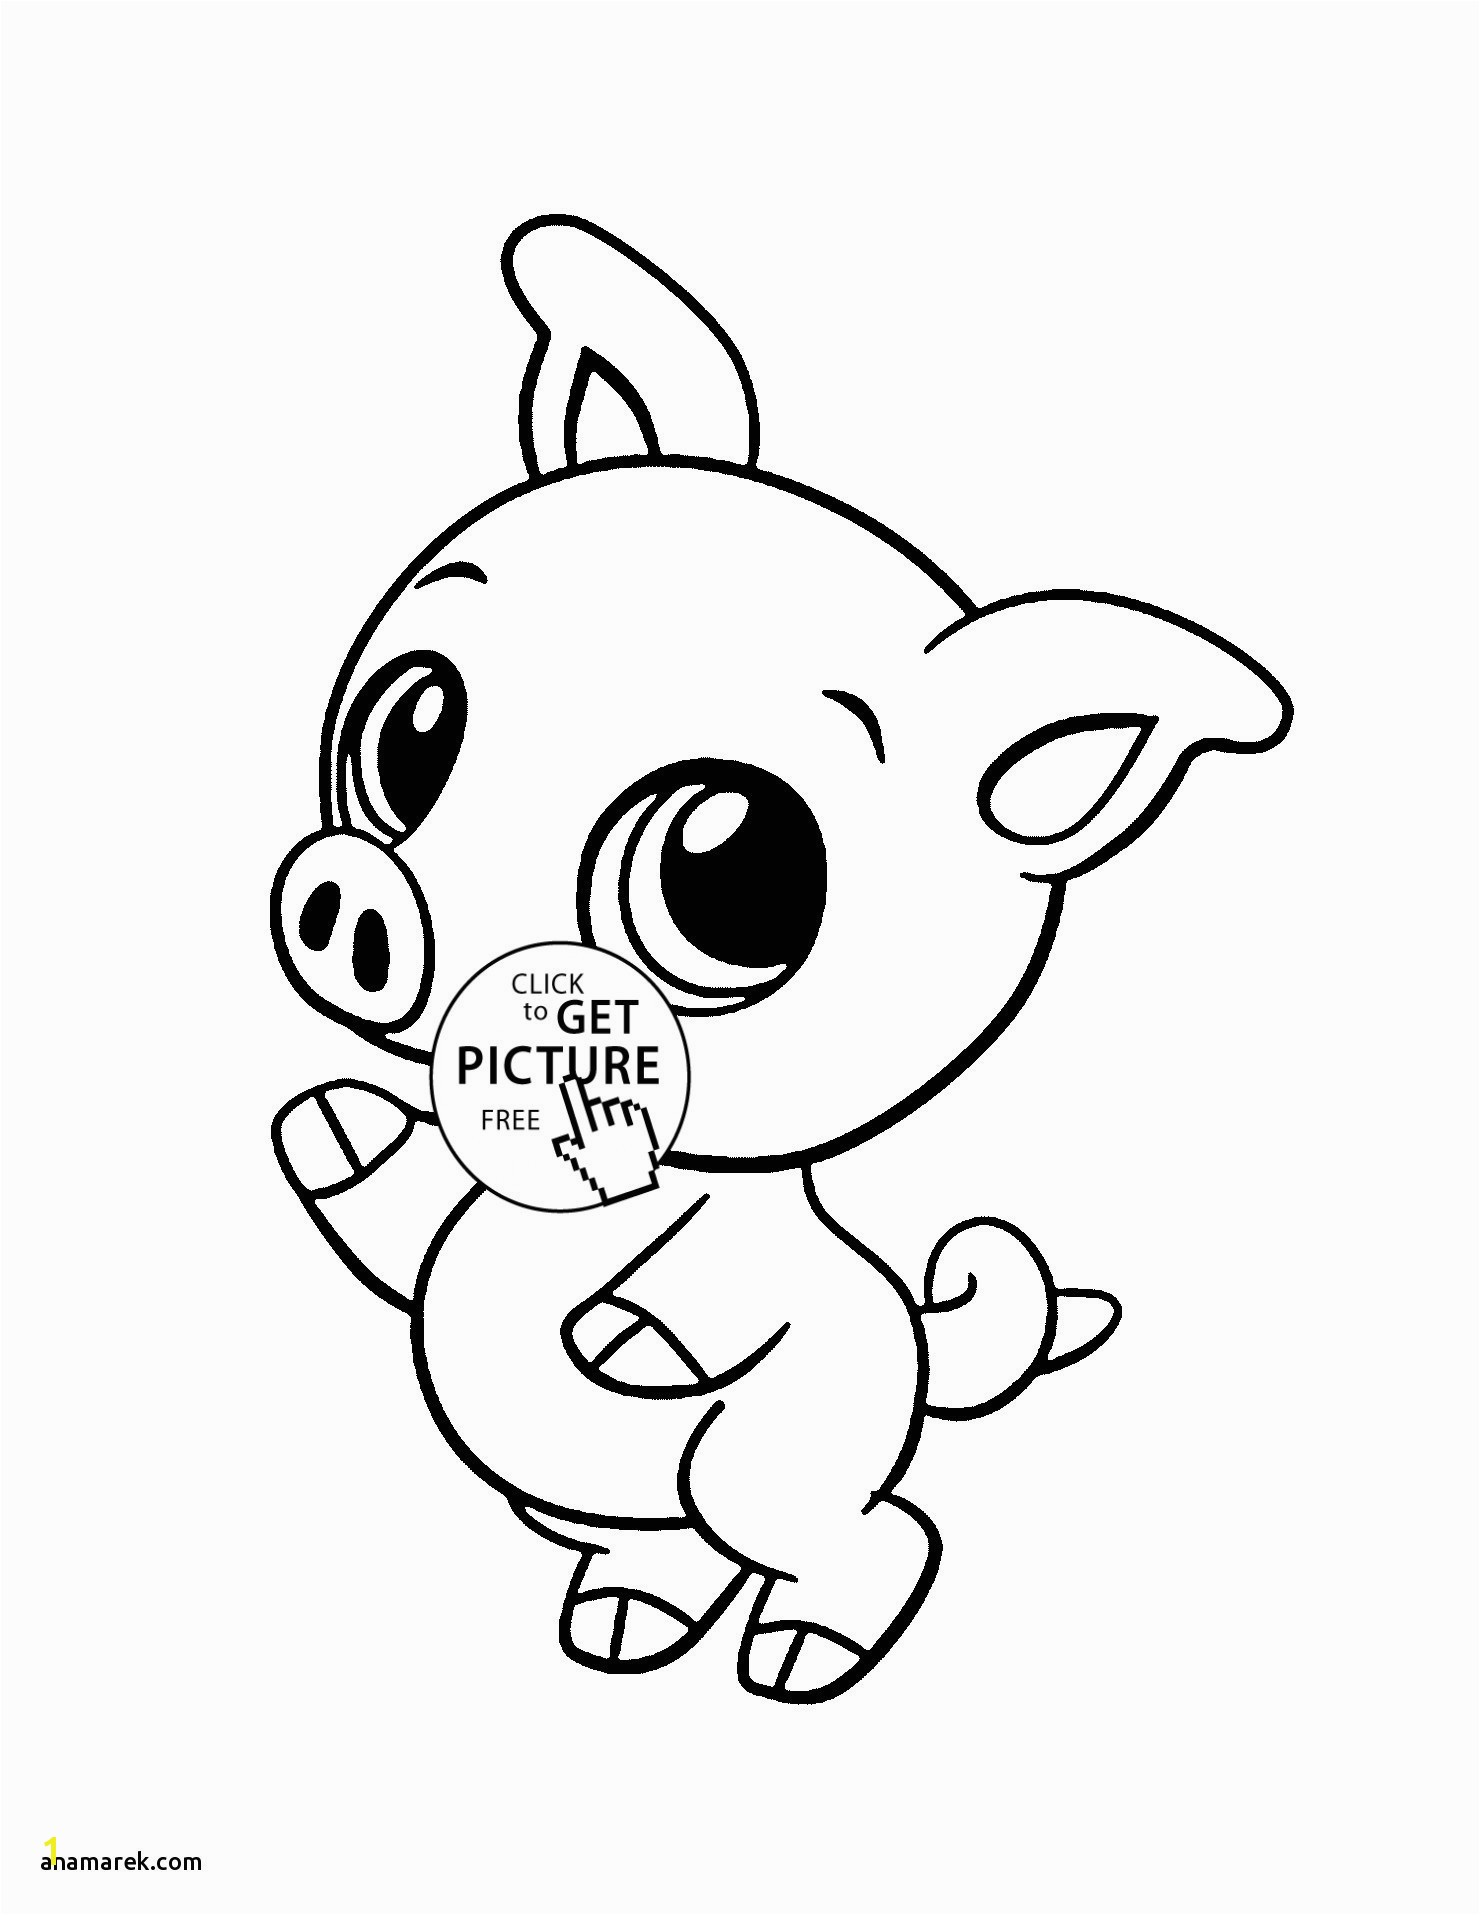 Baby Animal Coloring Pages Lovely Fresh Media Cache Ec0 Pinimg originals 2b 06 0d – Fun